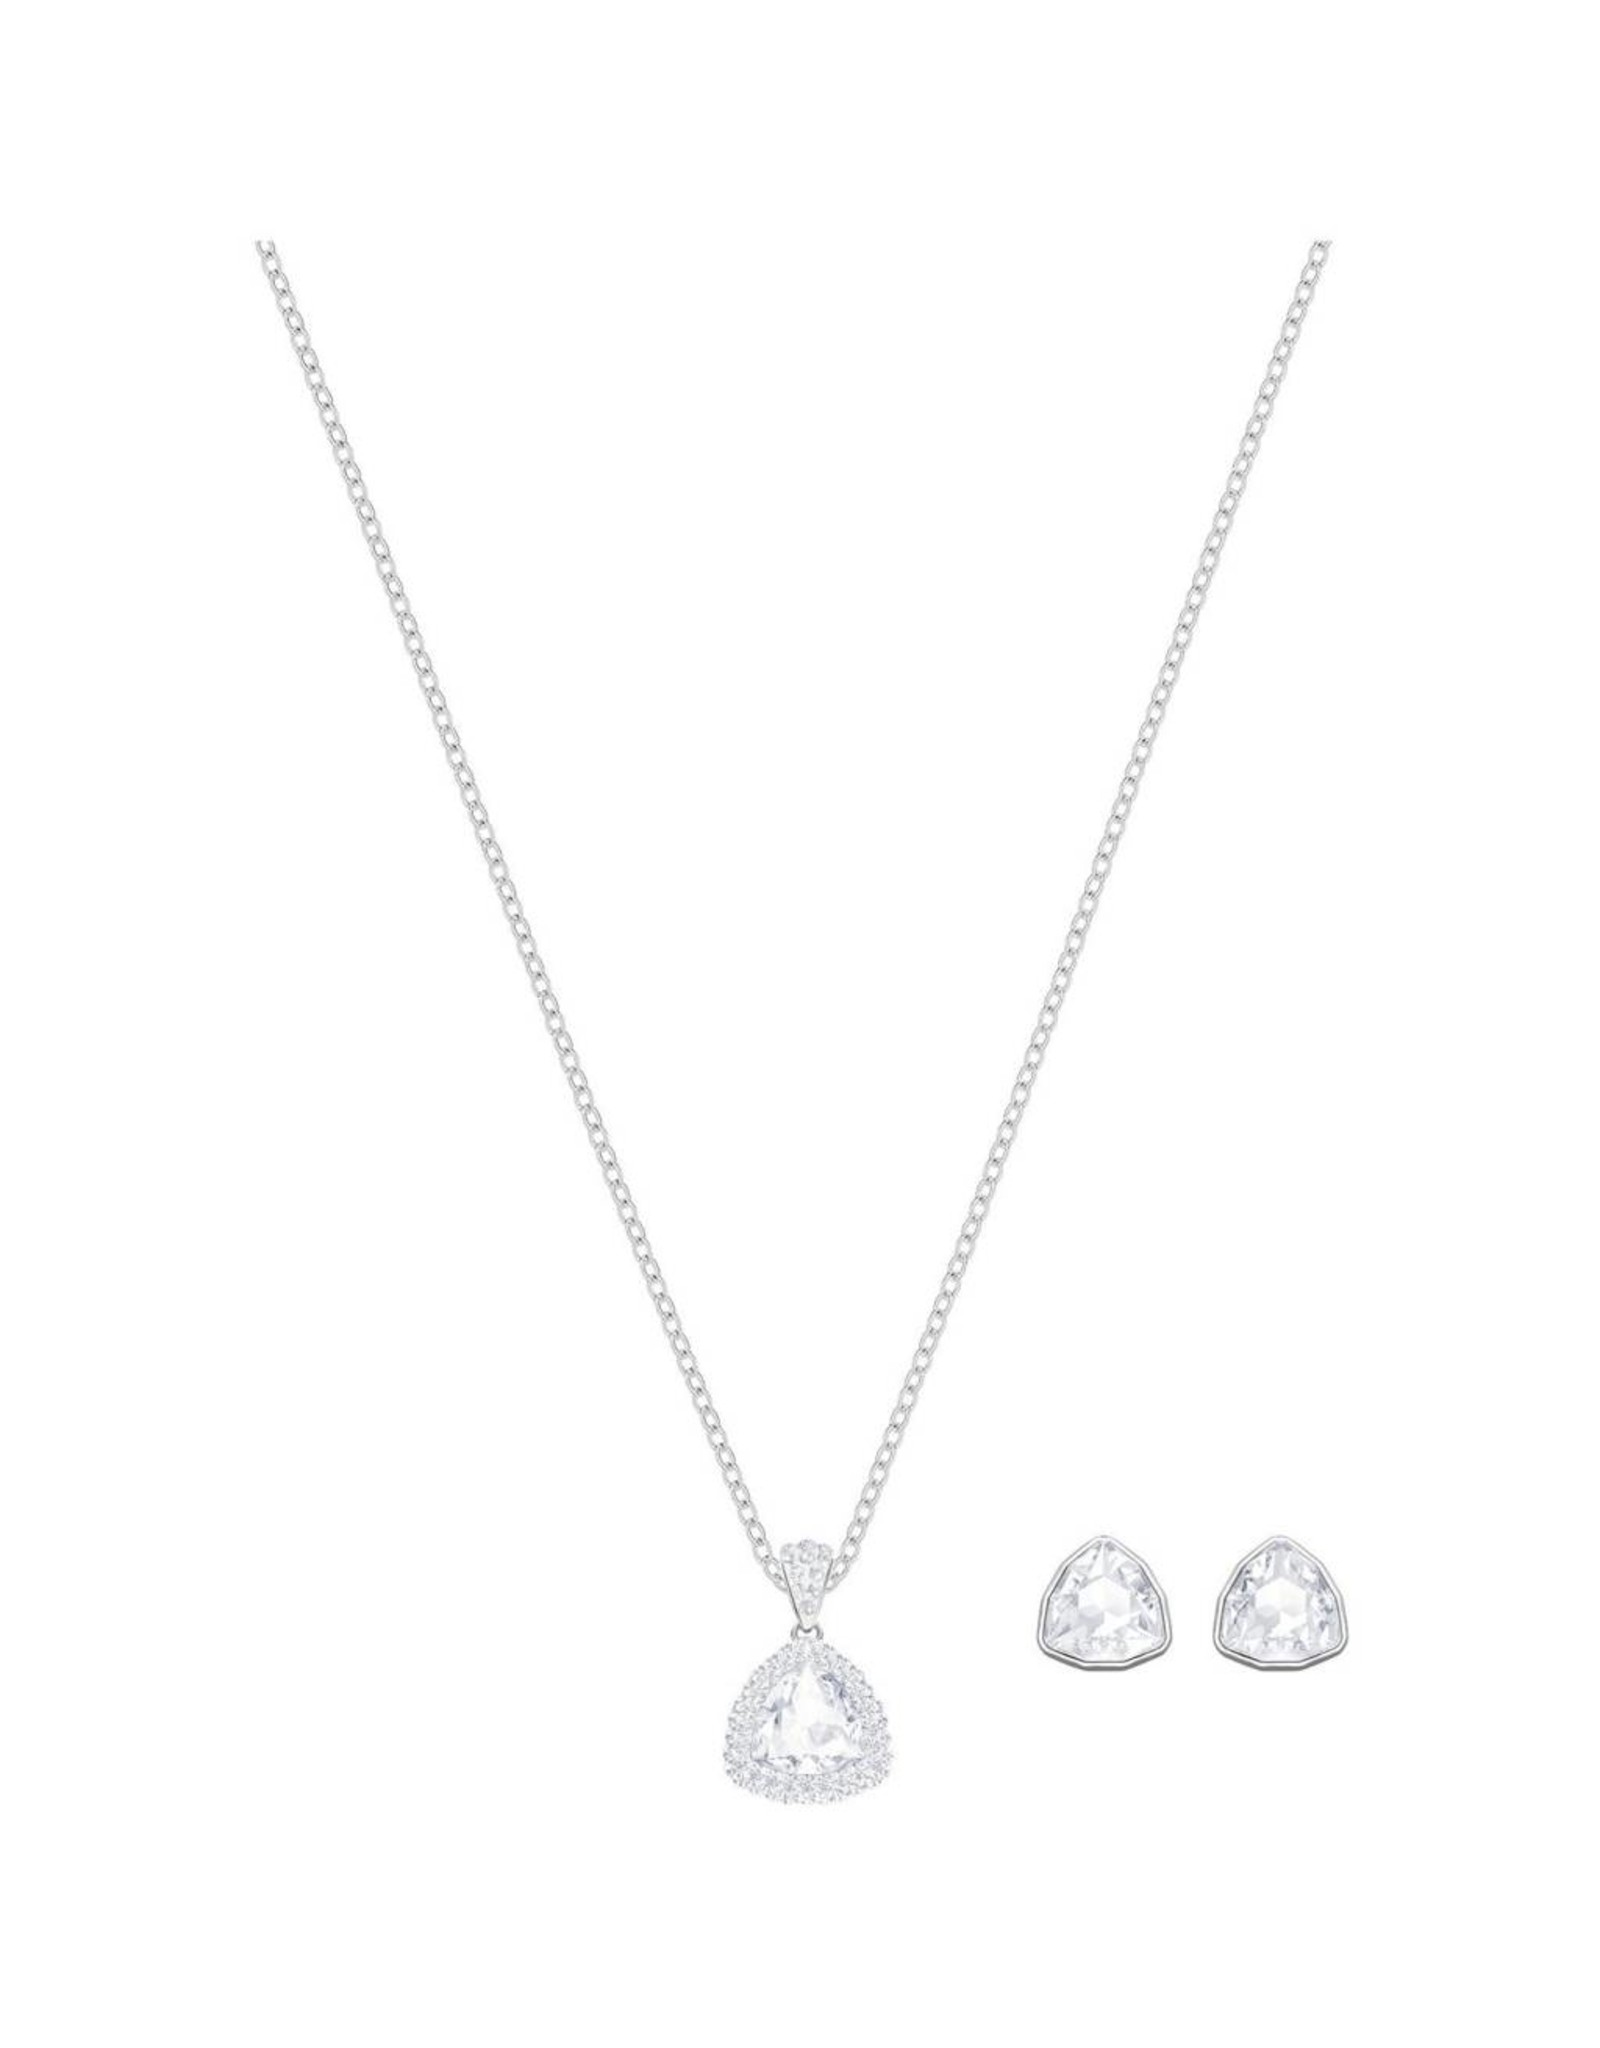 Swarovski Swarovski Begin Pendant & Earrings Set